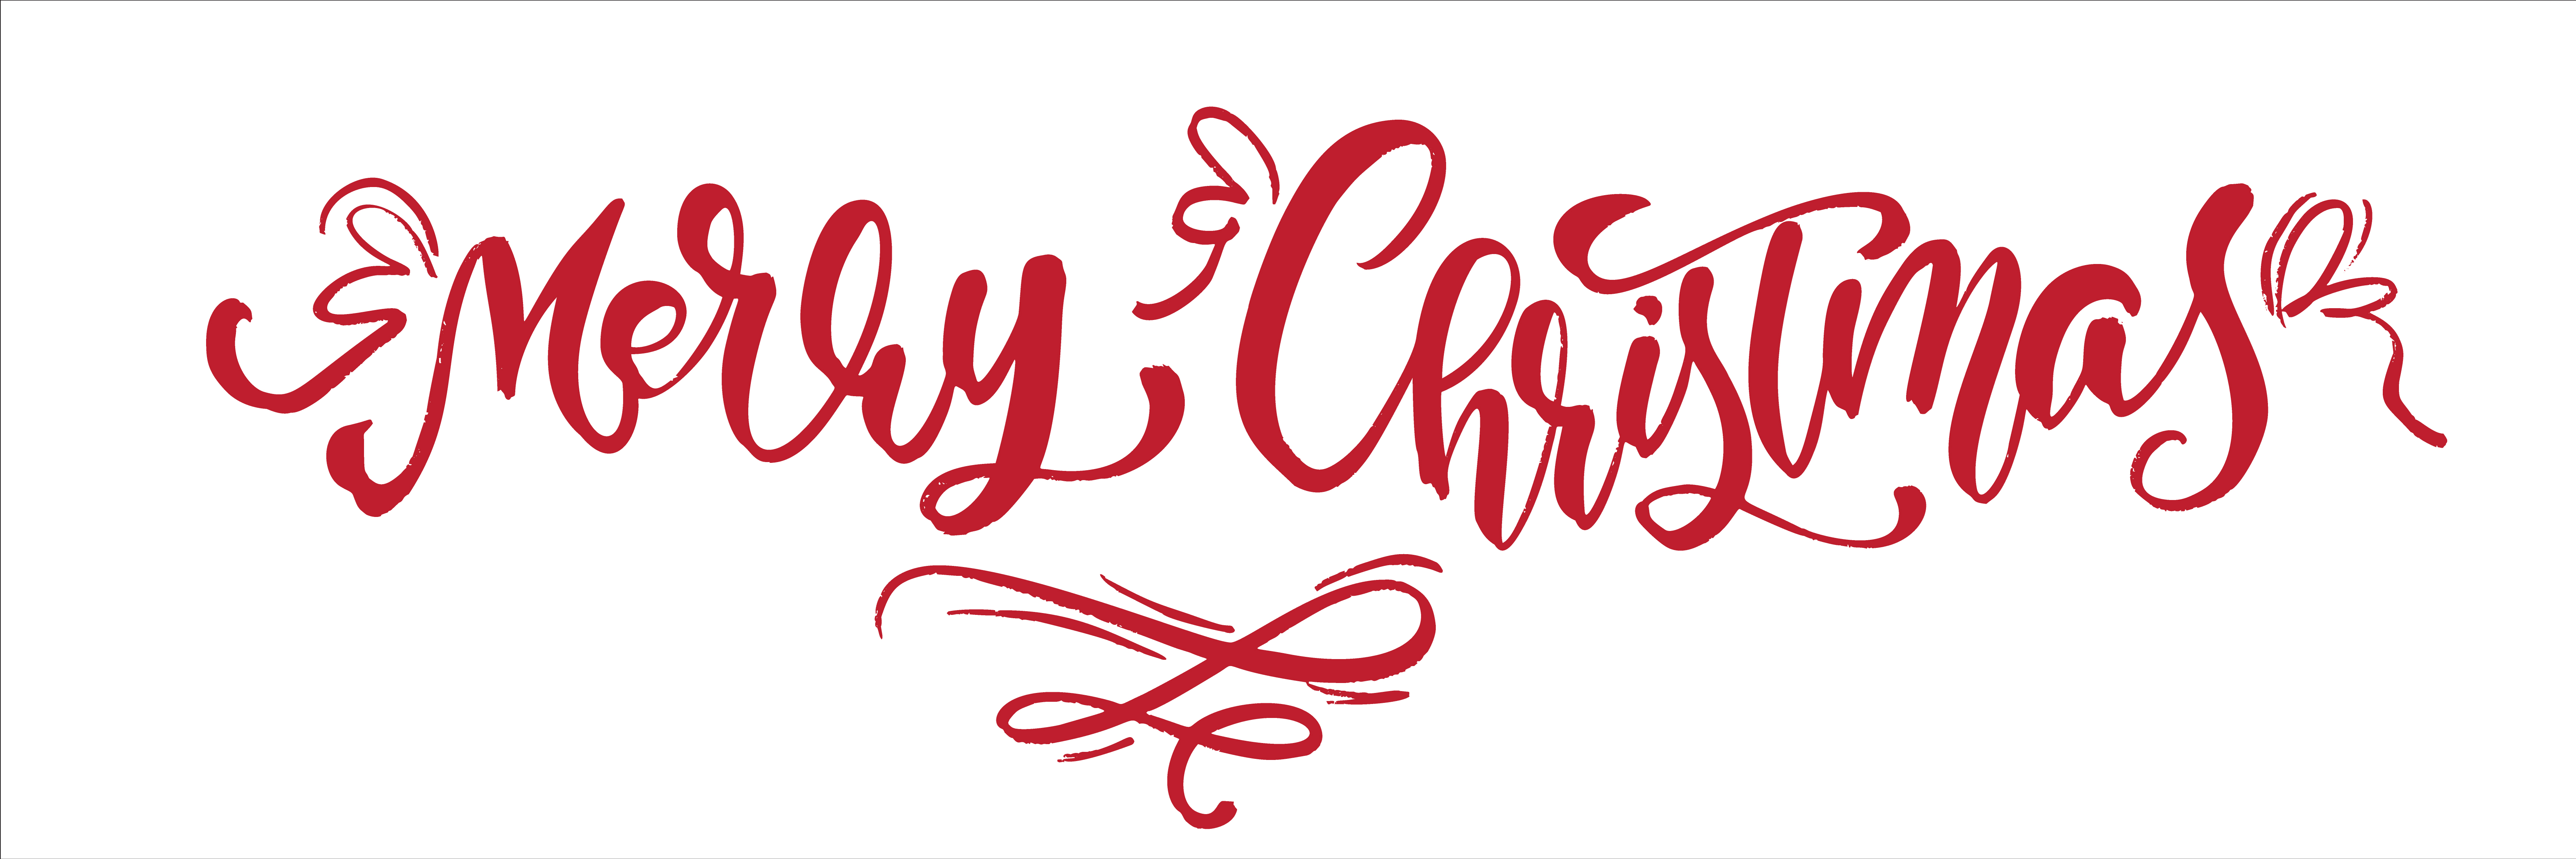 merry christmas red vintage calligraphy lettering vector